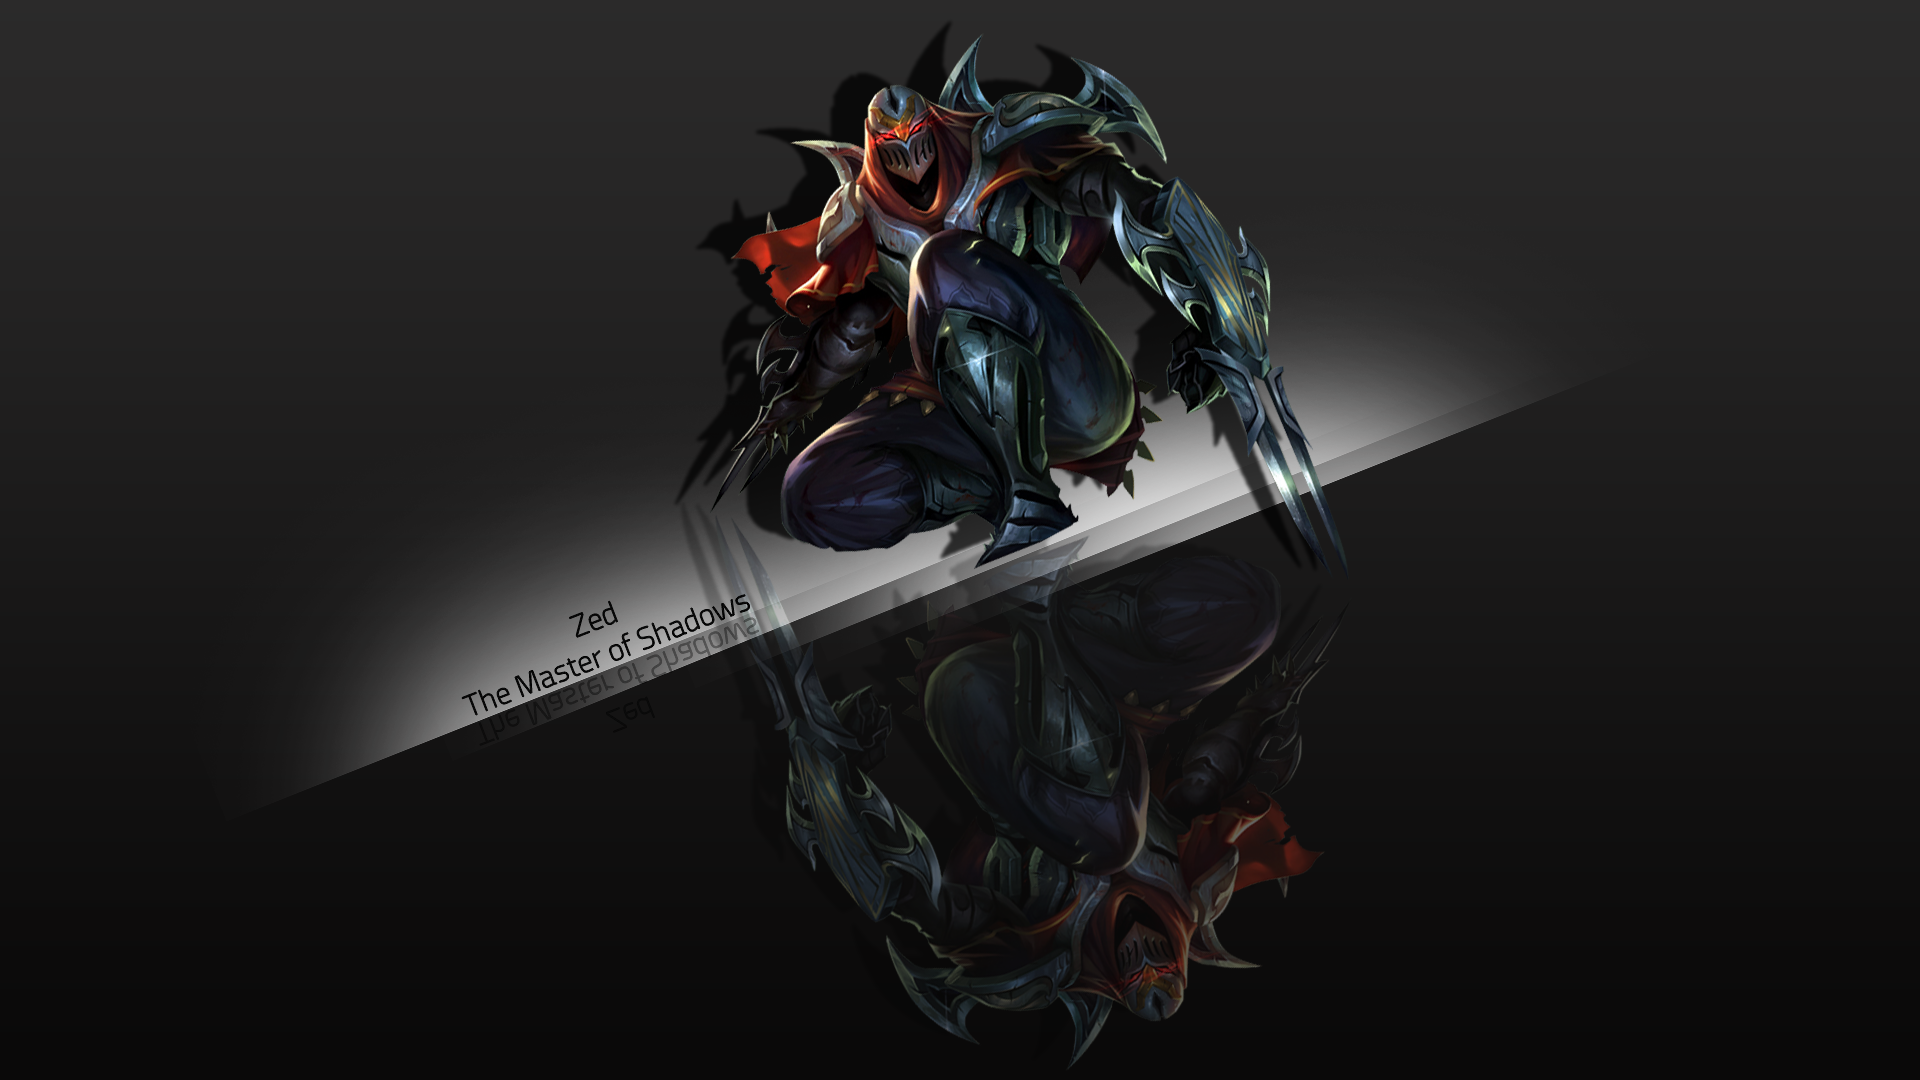 deviantART: More Like Zed - The Master of Shadows by Dwindlekin